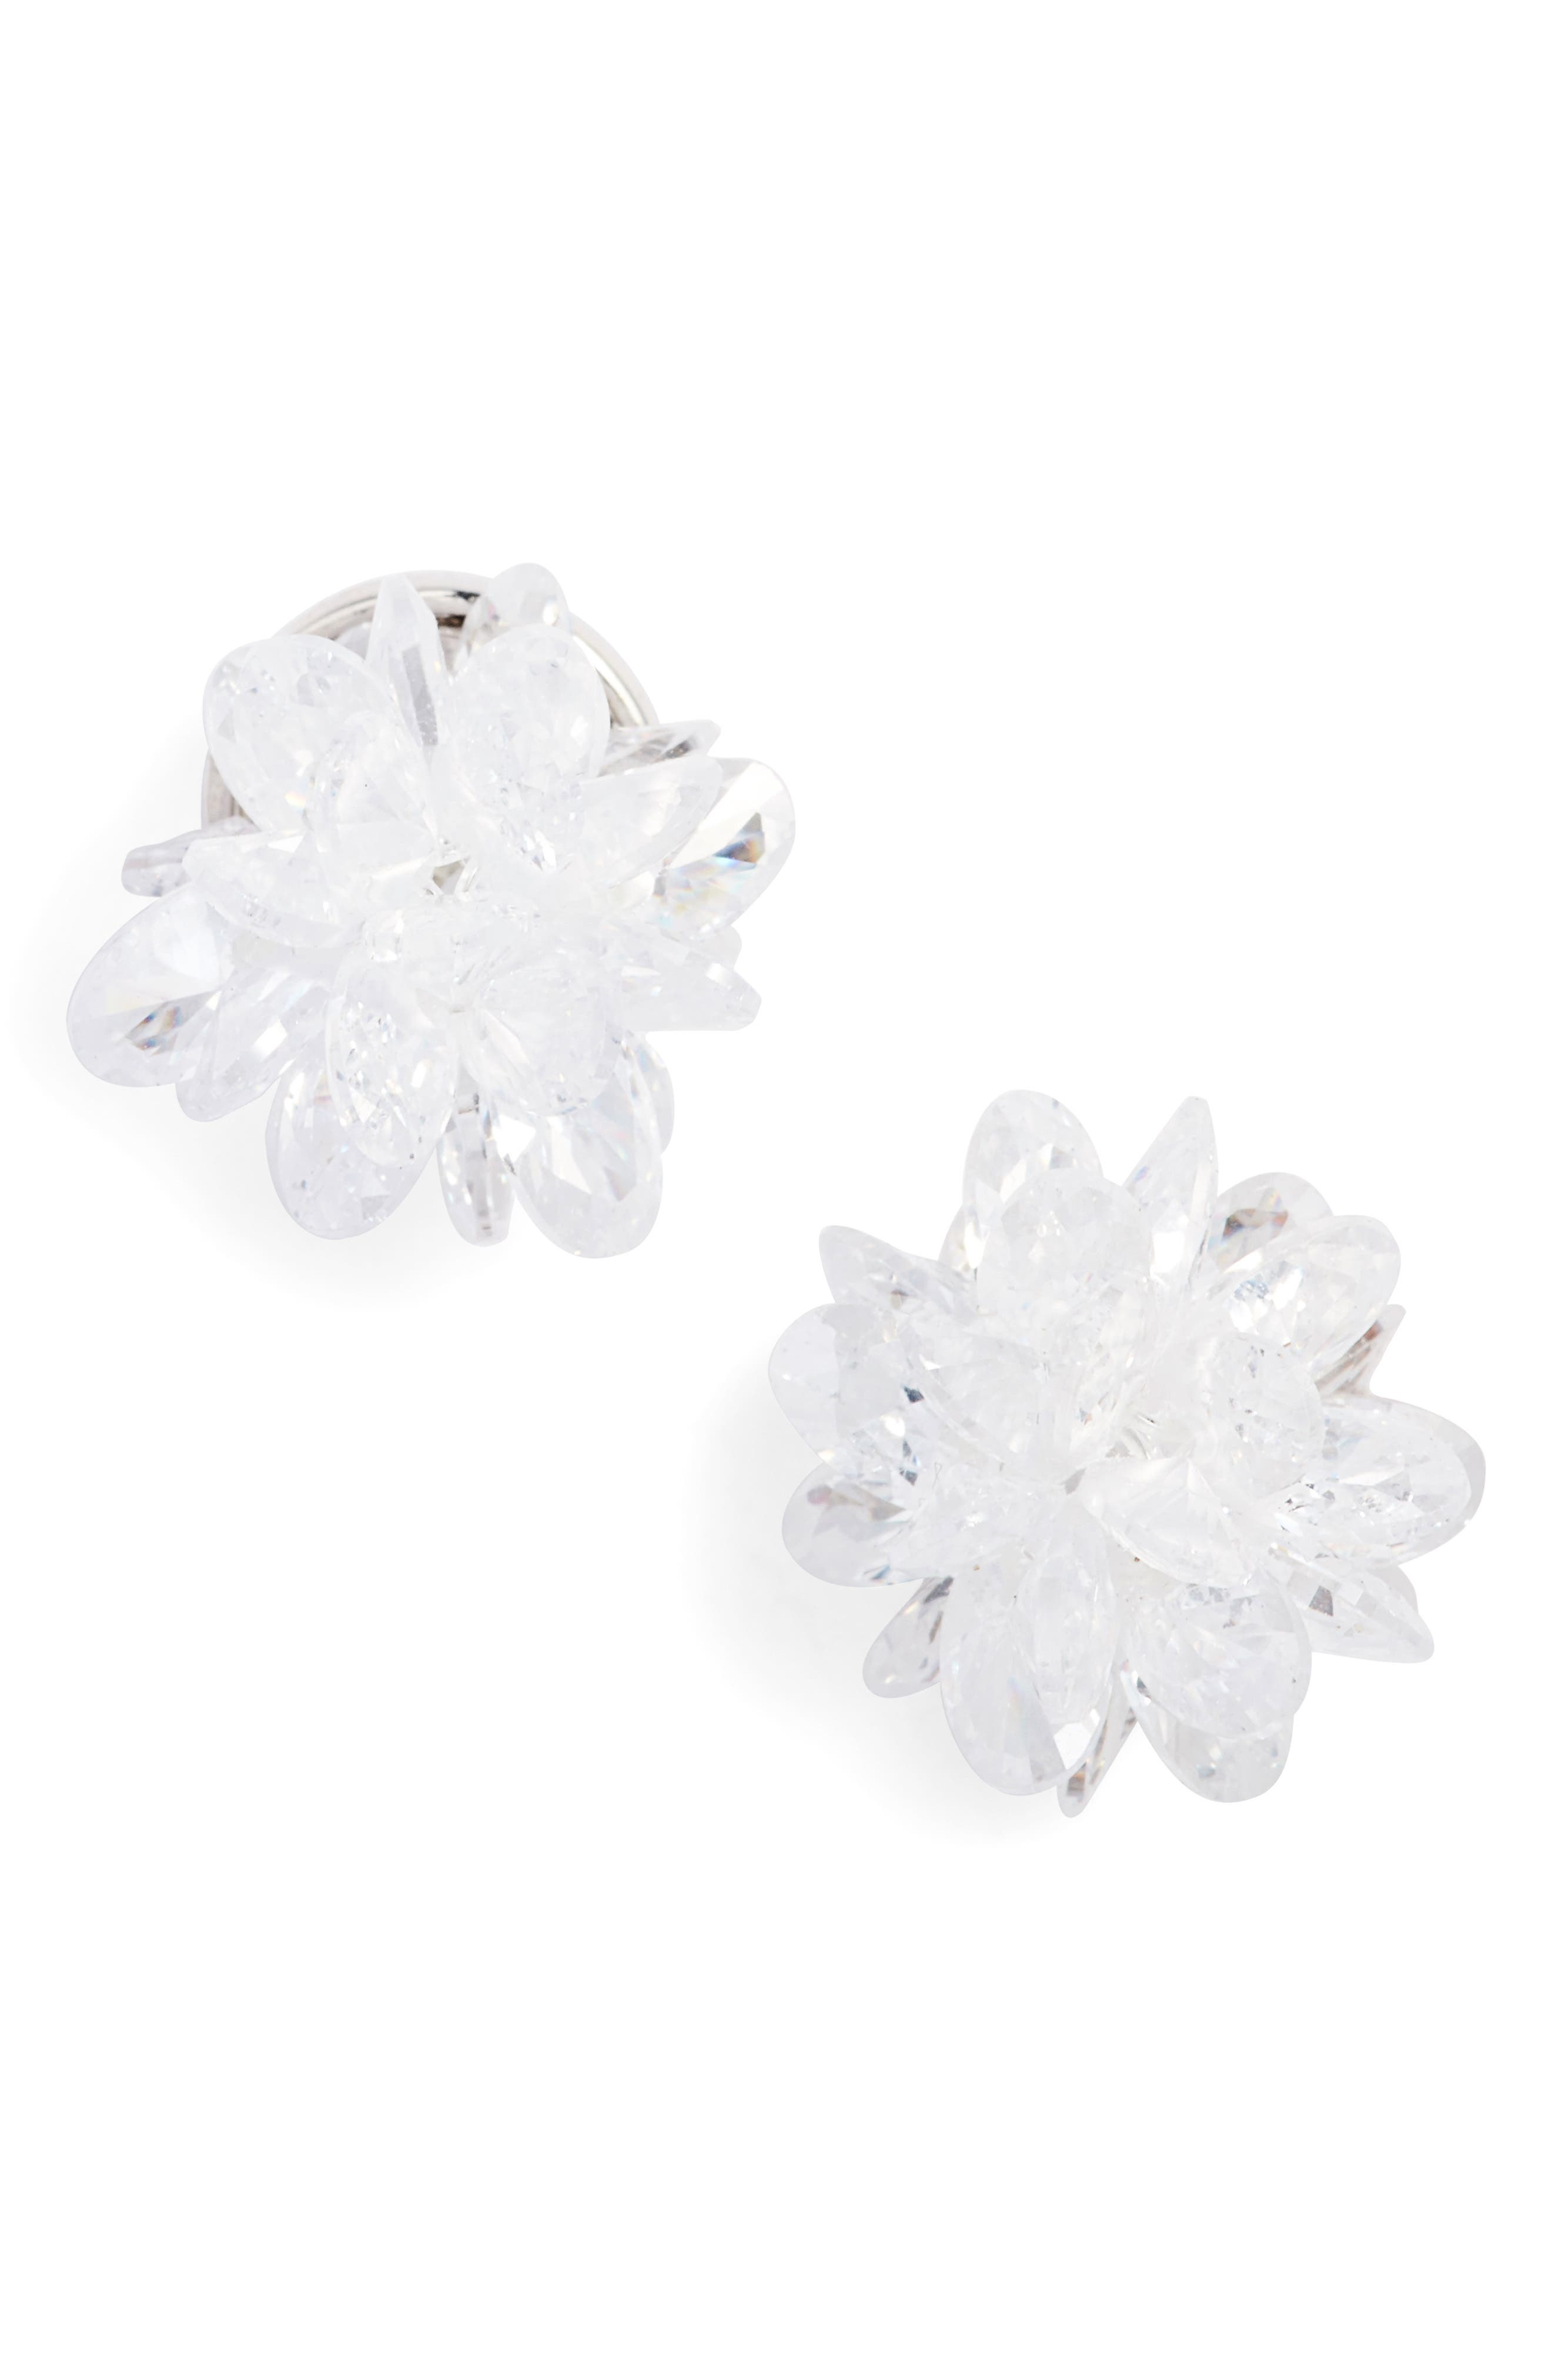 flying colors rock candy stud earrings,                         Main,                         color, Clear